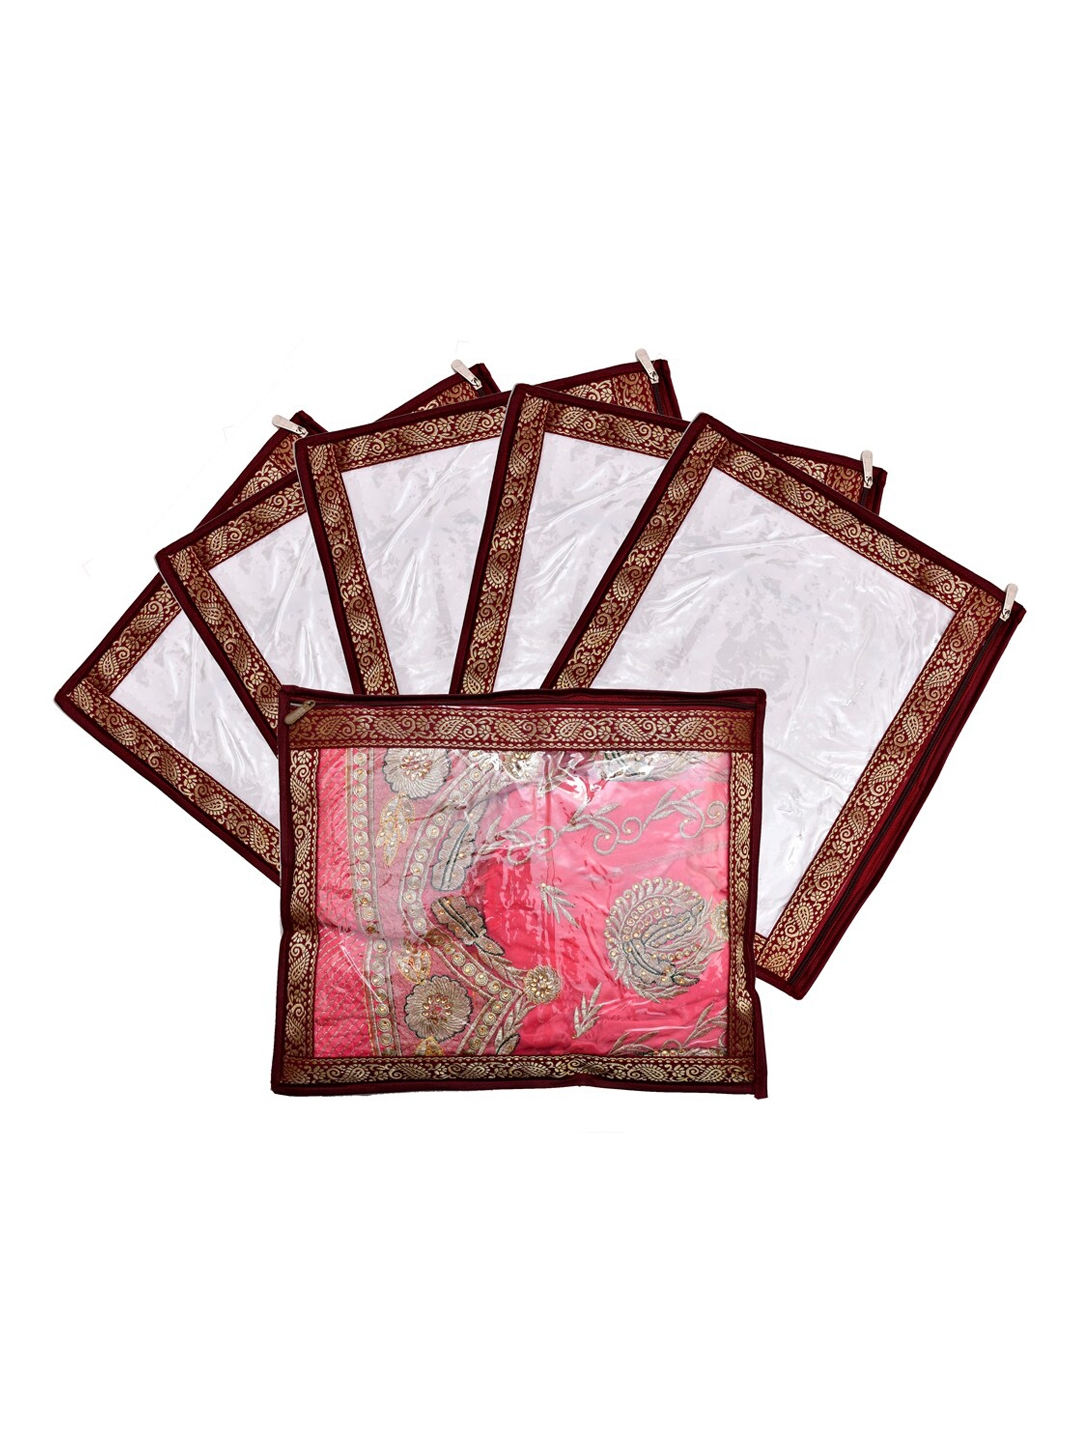 Kuber Industries Set Of 6 Maroon   Transparent Single Packing Saree Cover Organizers